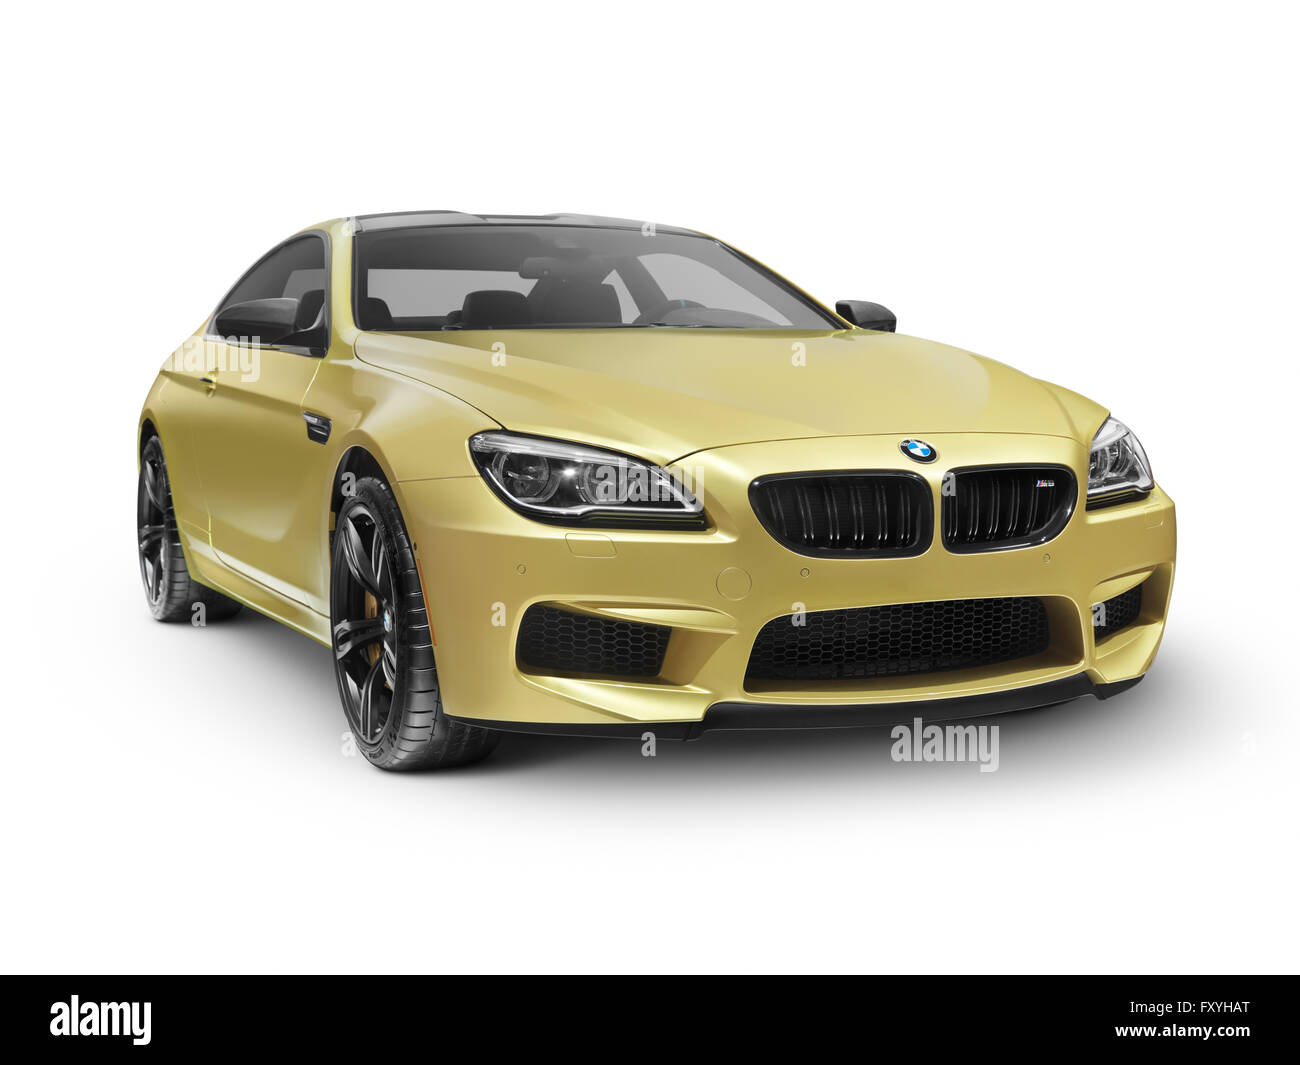 2015 BMW M6, gold, coupe luxury car - Stock Image